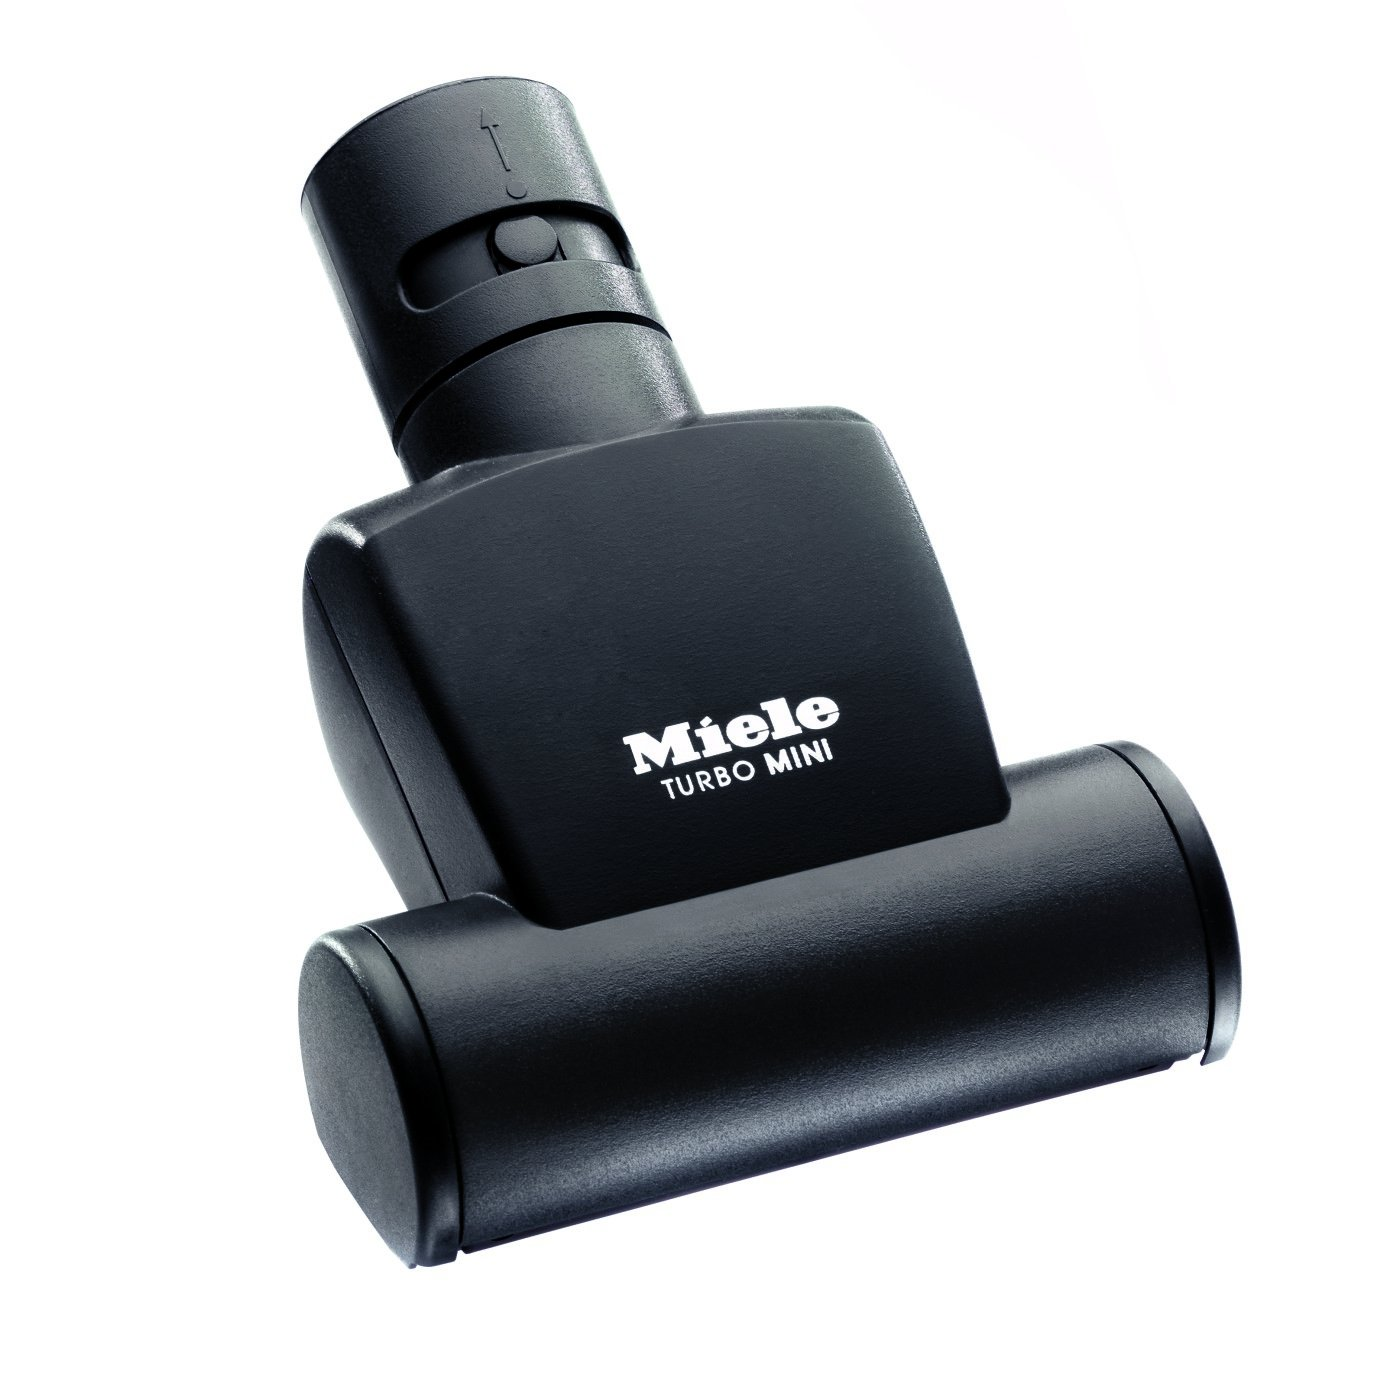 Miele STB 101 Mini Handheld Turbobrush, Black Y STB101